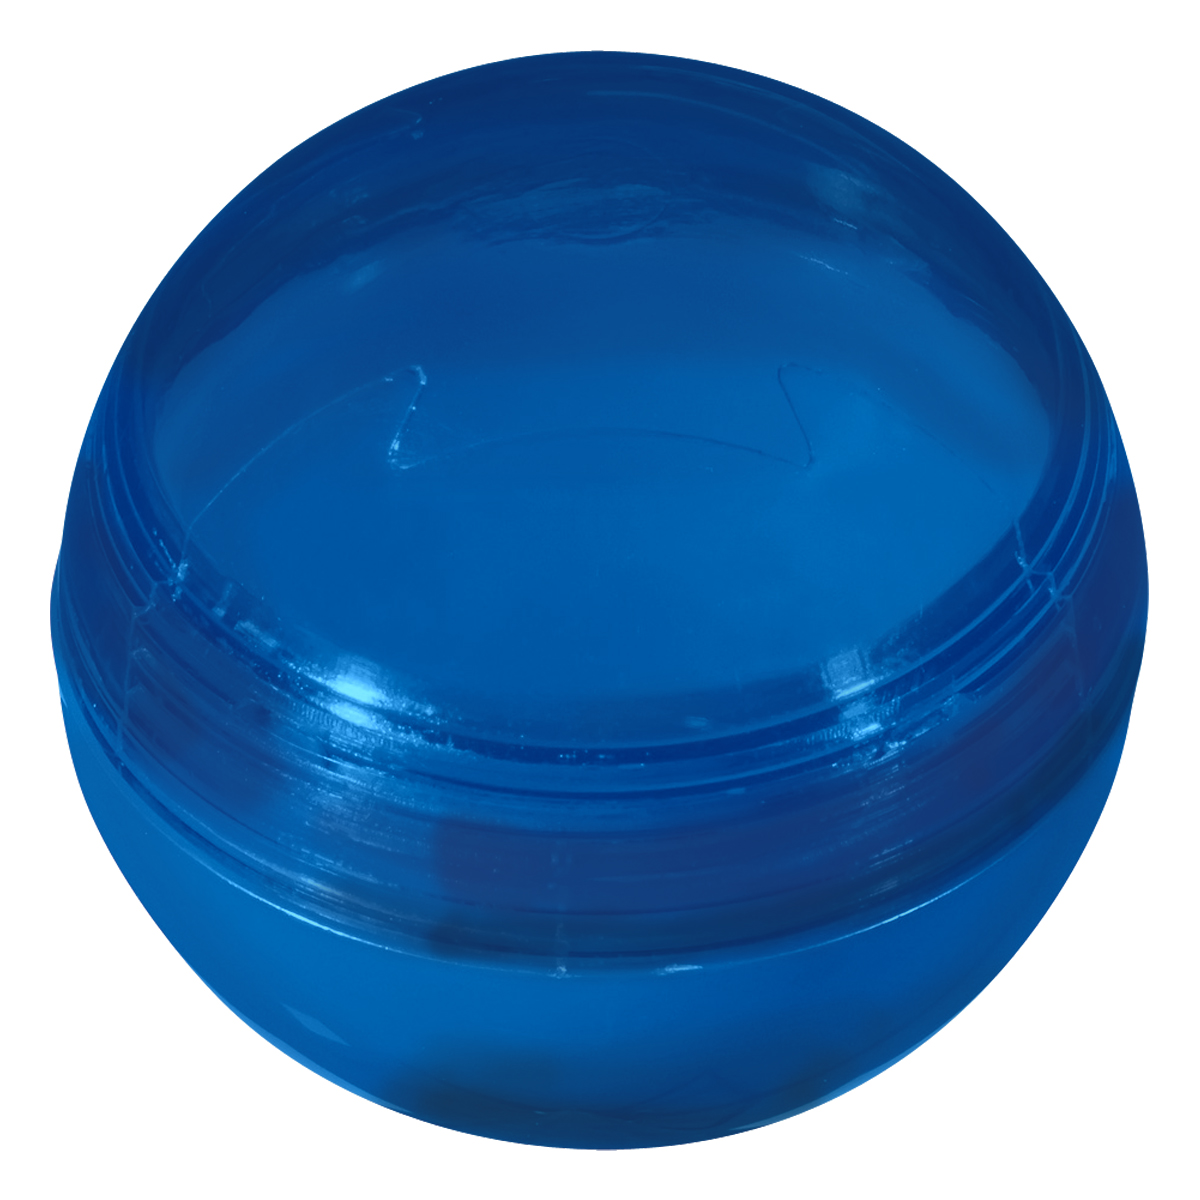 Translucent Blue Lip Gloss Ball